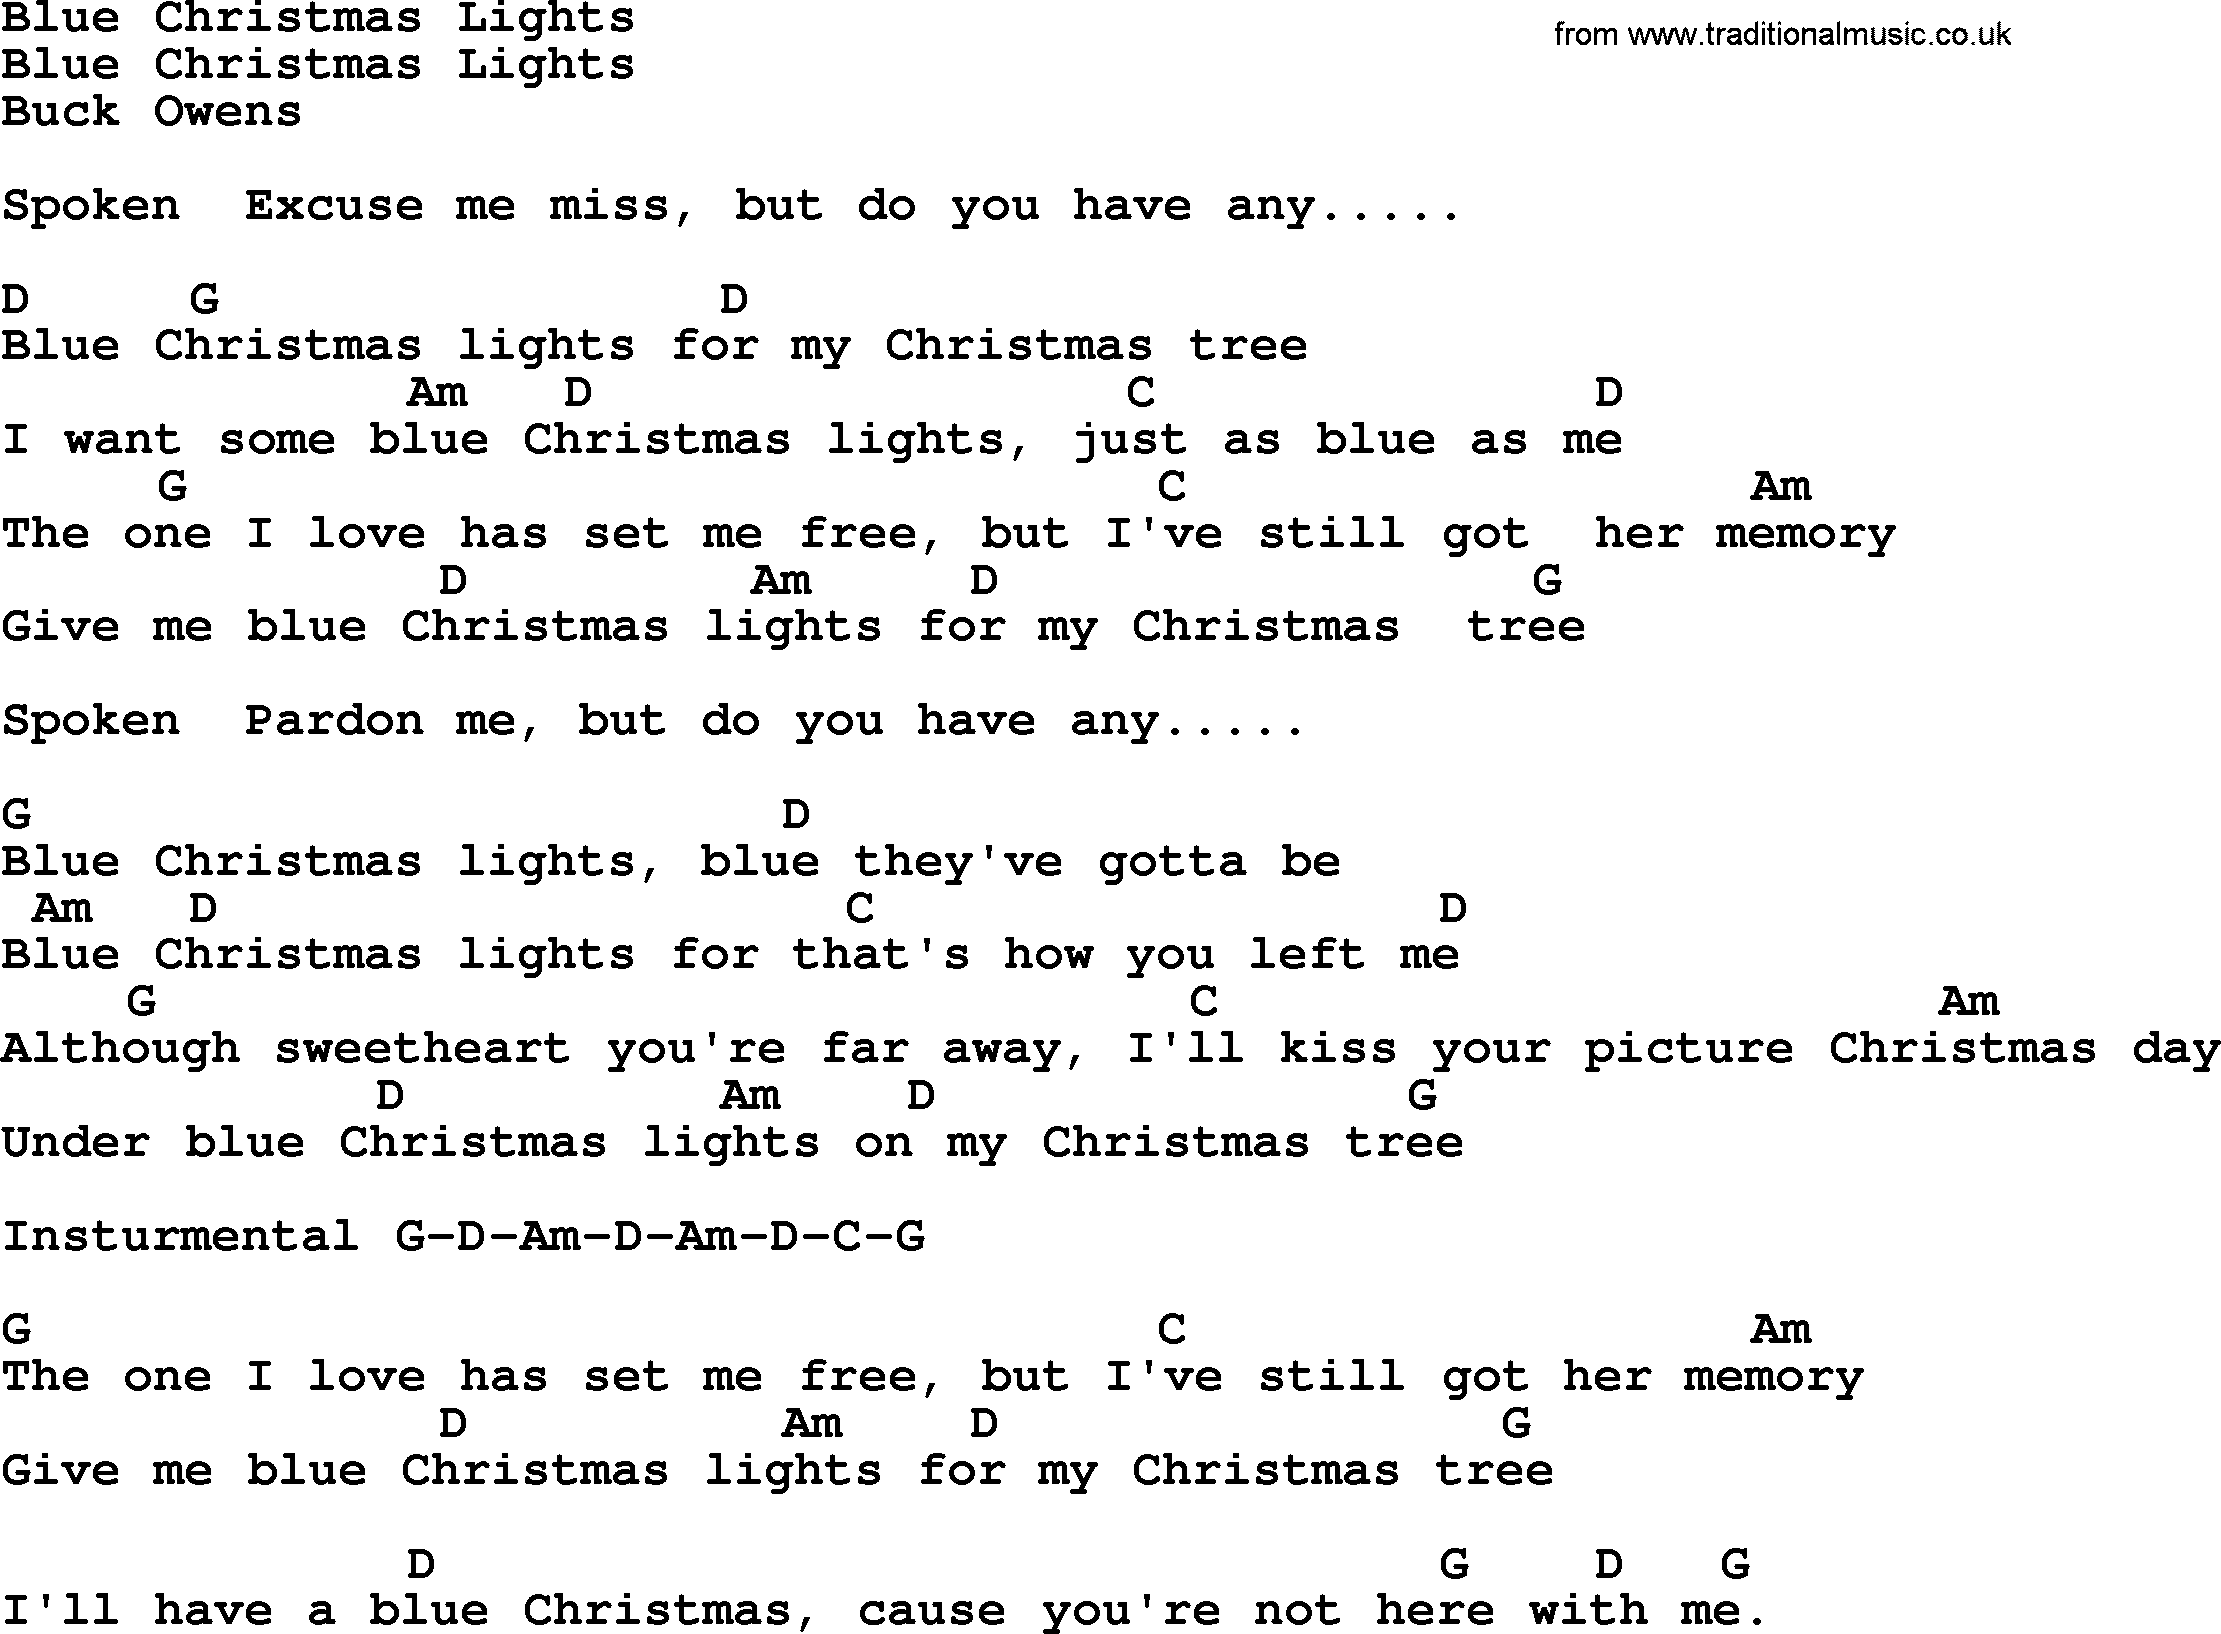 Blue Christmas Lights - Bluegrass lyrics with chords